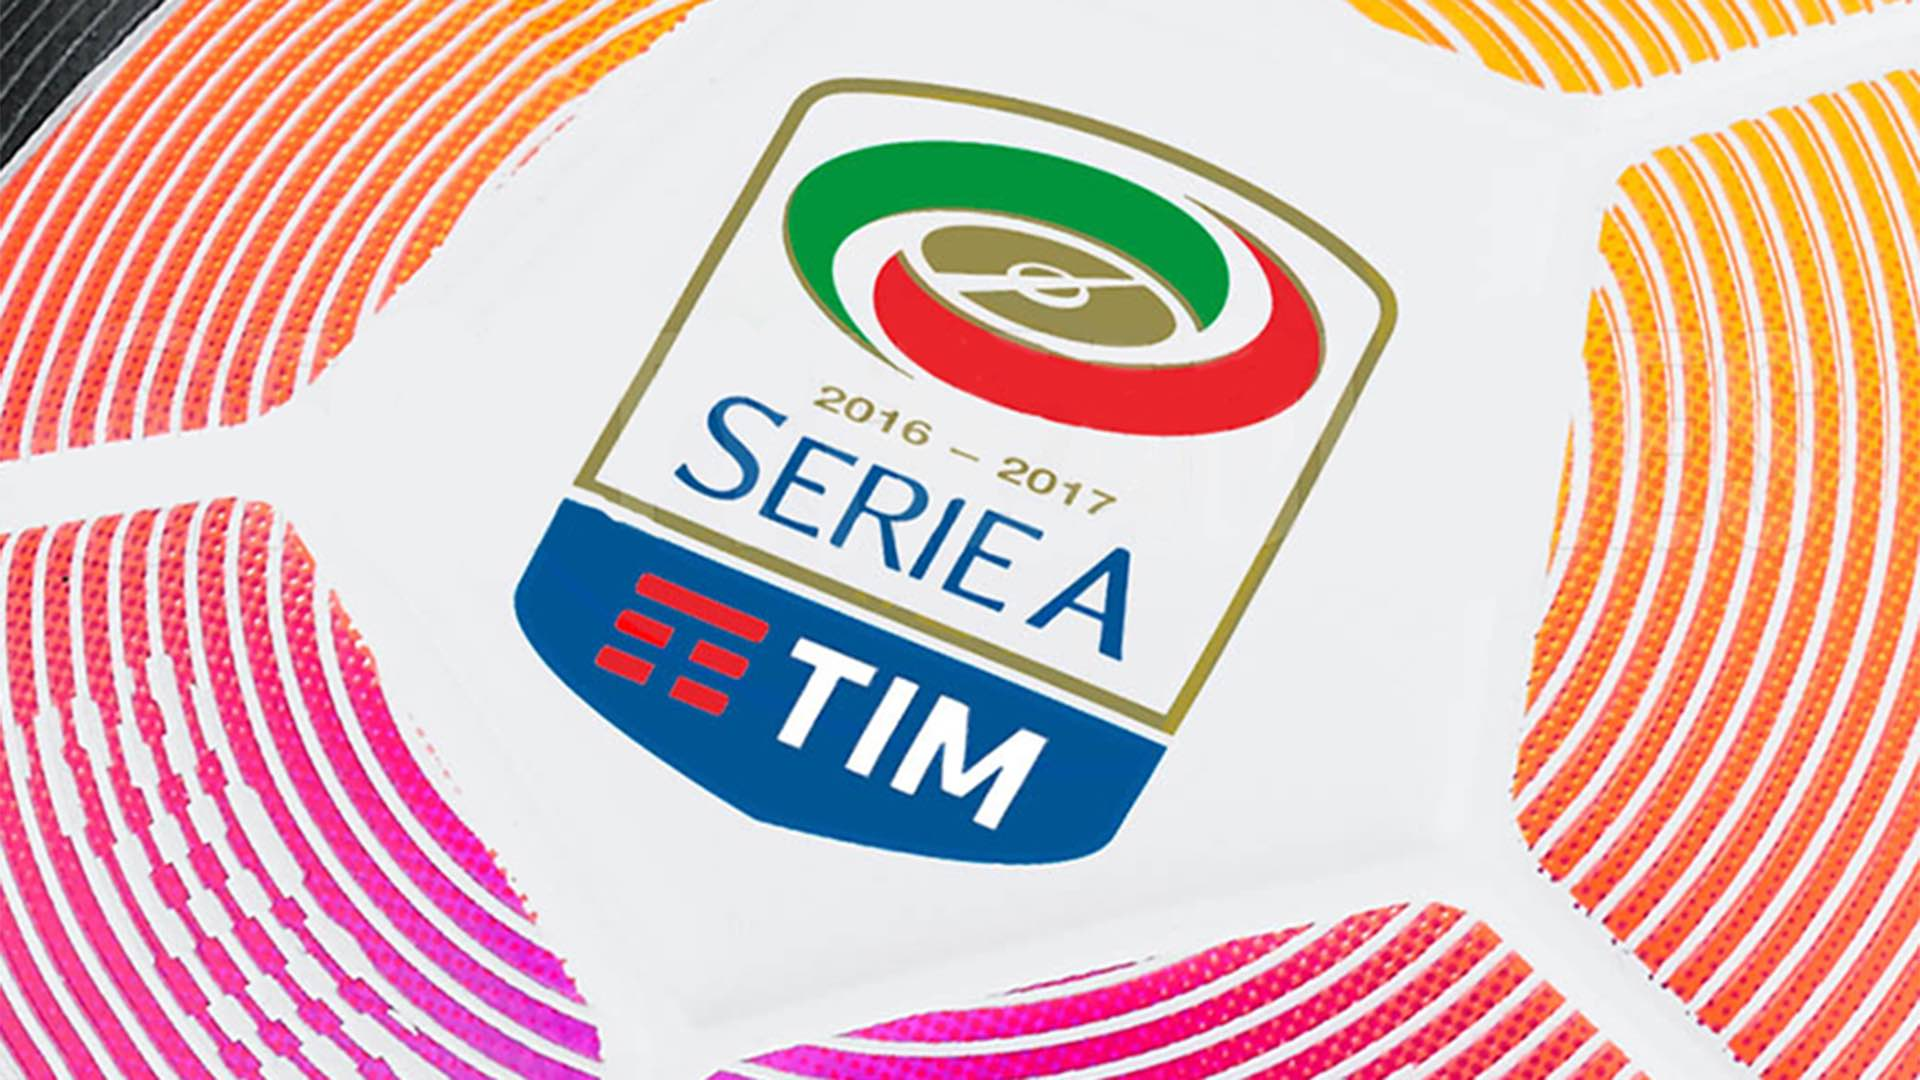 diriti tv calcio serie a